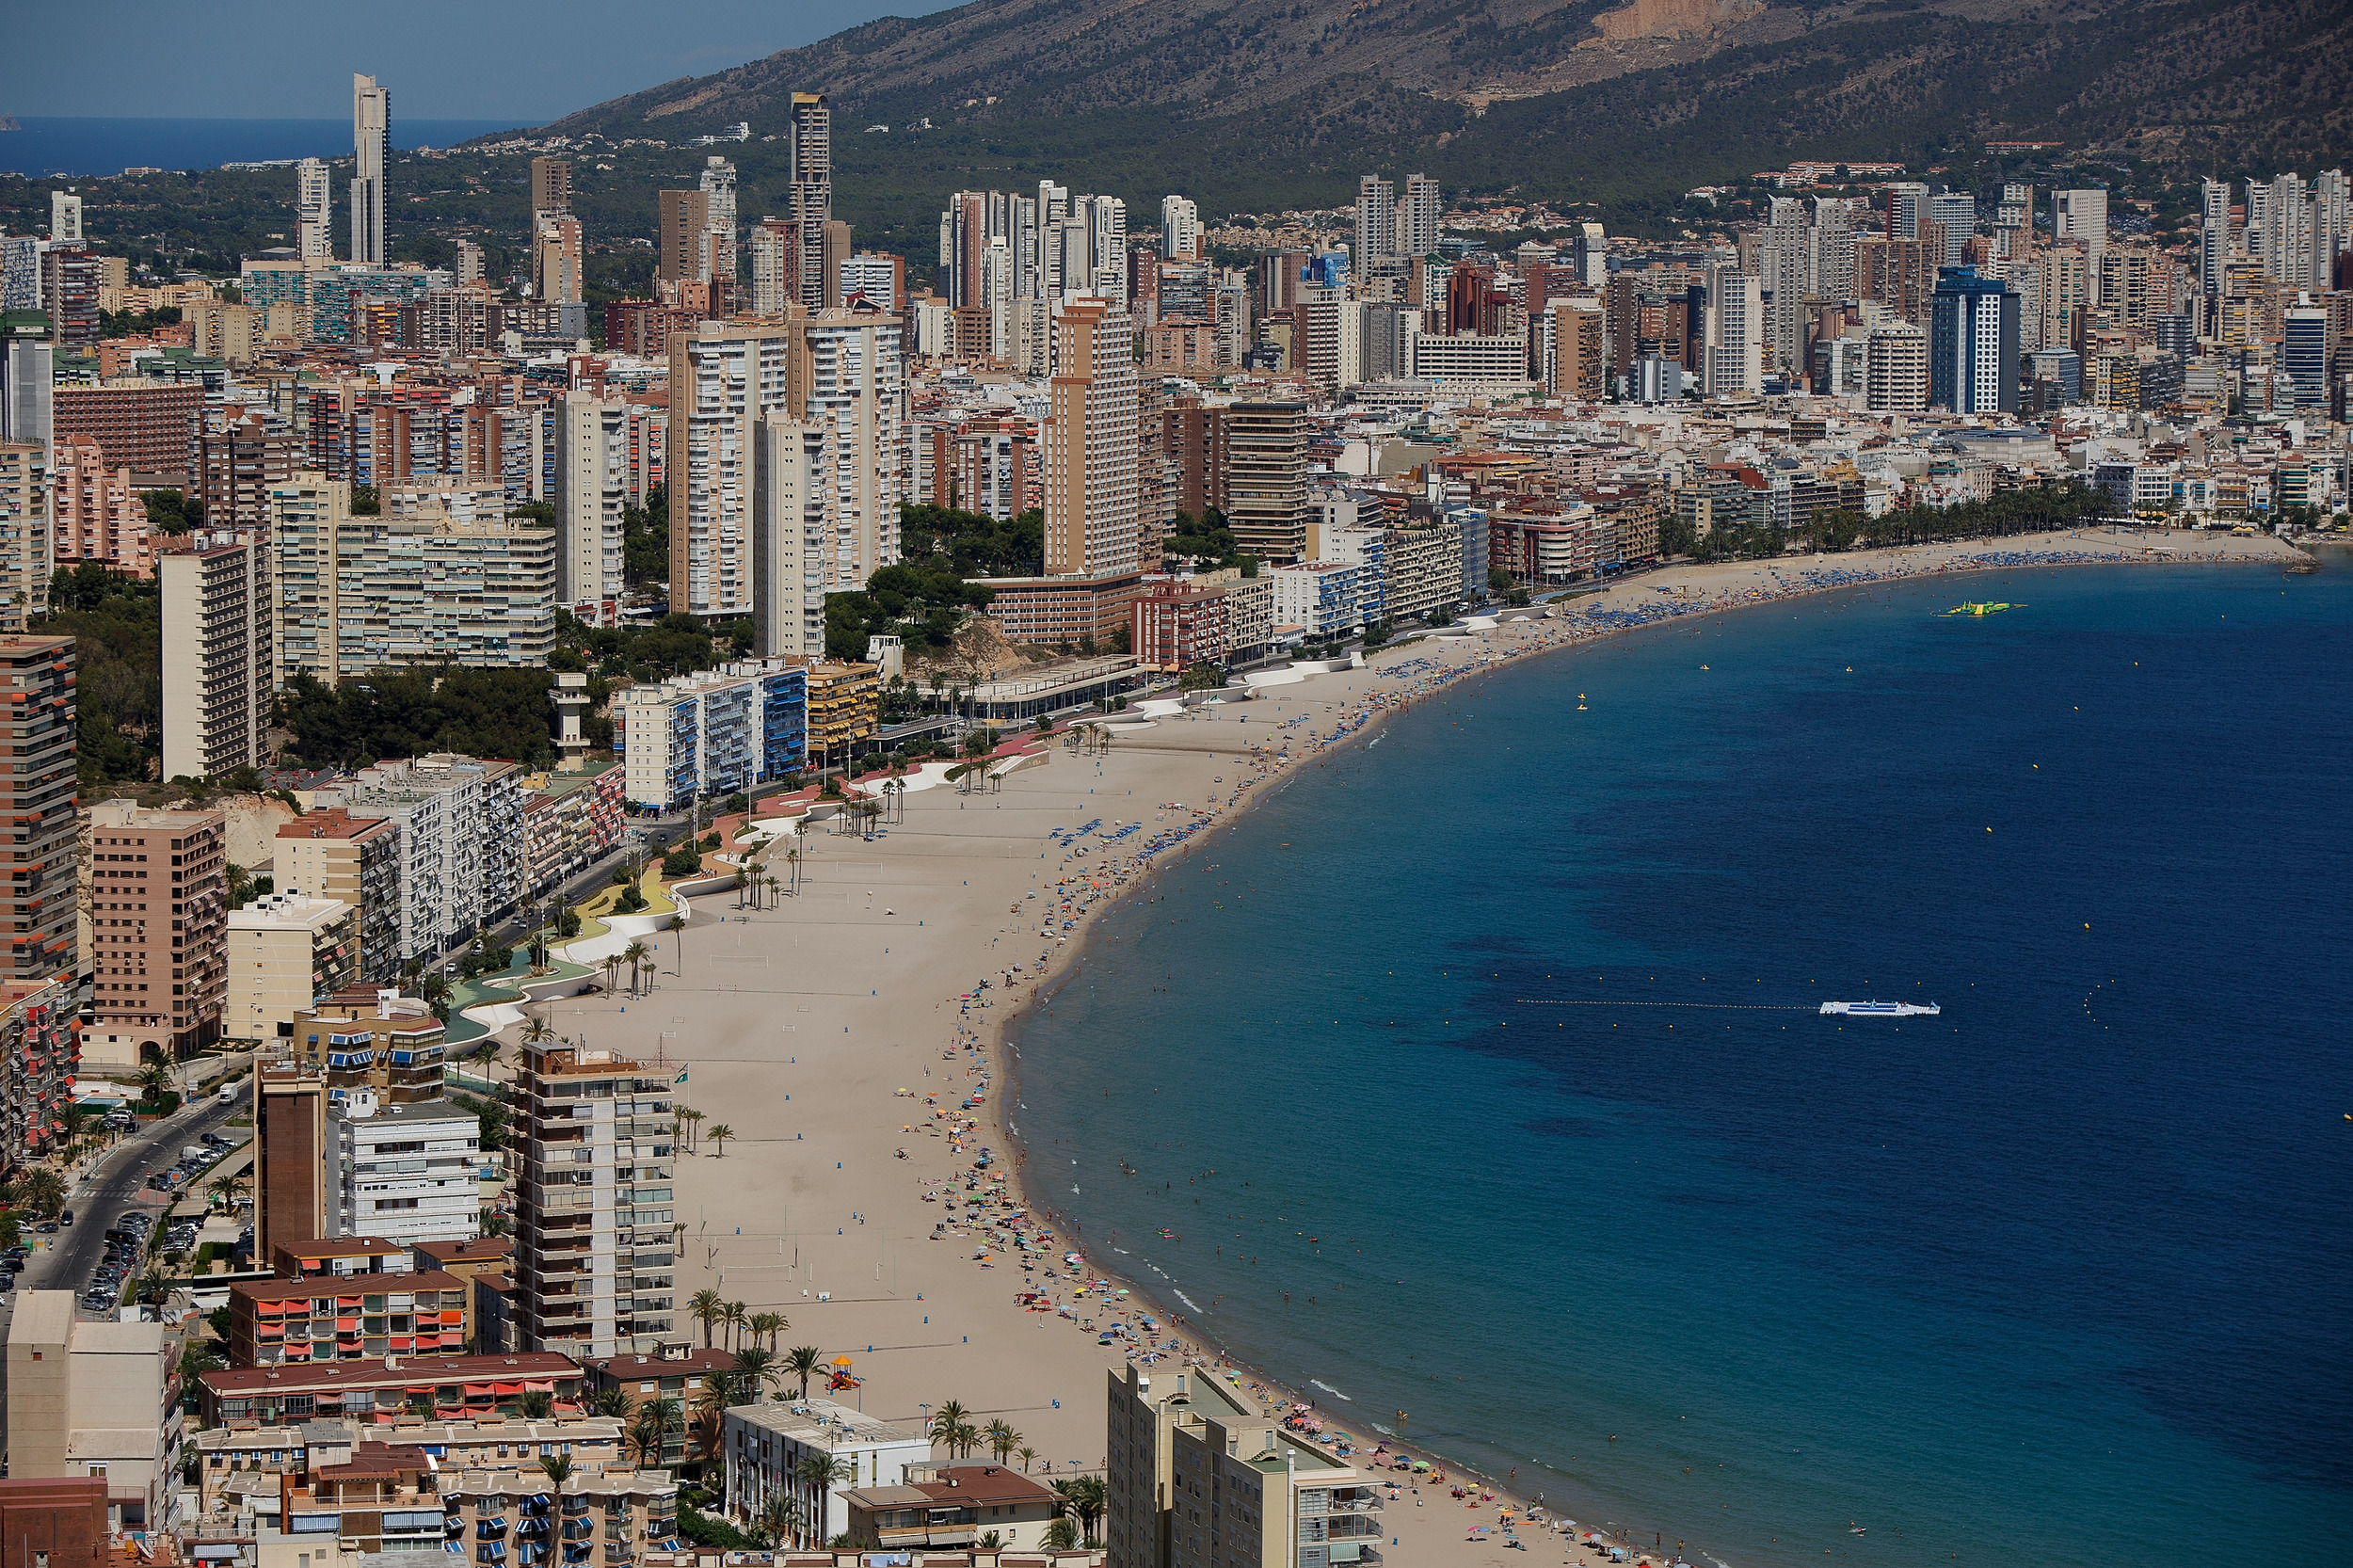 Thomson Flights Check In >> Cheap holiday 2014s: Bulgaria, Spain and Crete come top ...